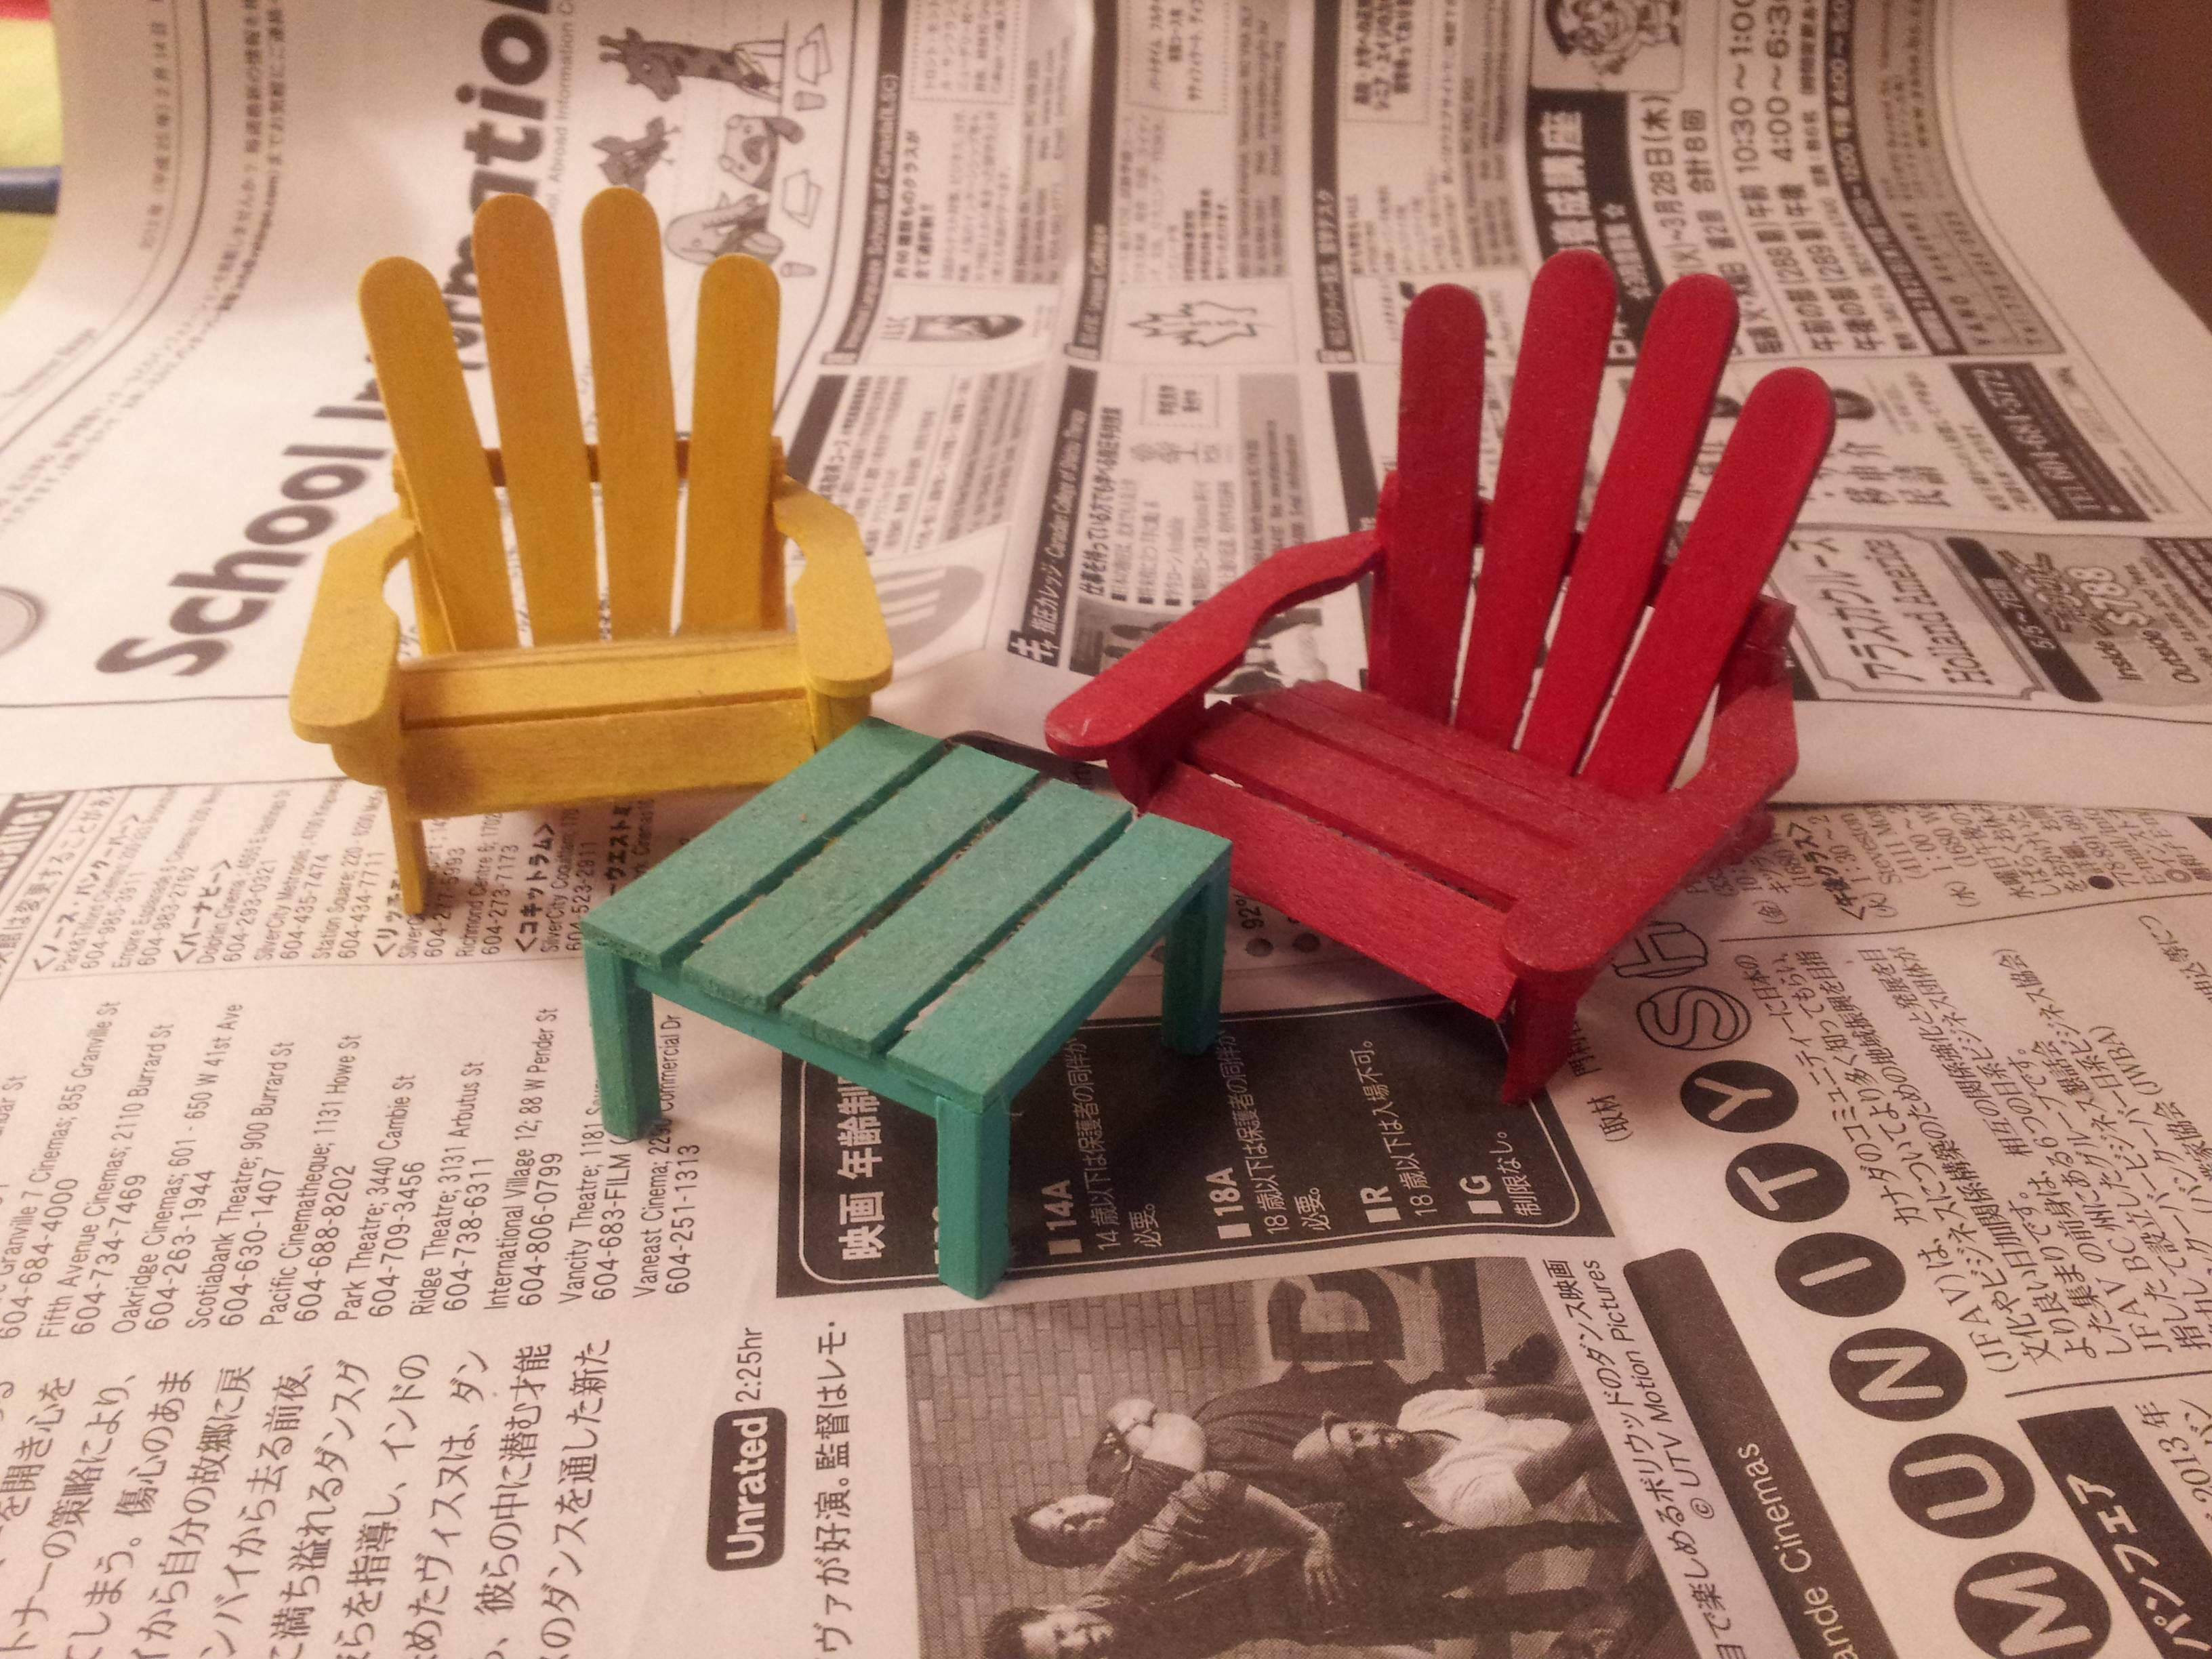 Long wooden craft sticks - My Dad Makes Lawn Chairs Out Of Popsicle Sticks